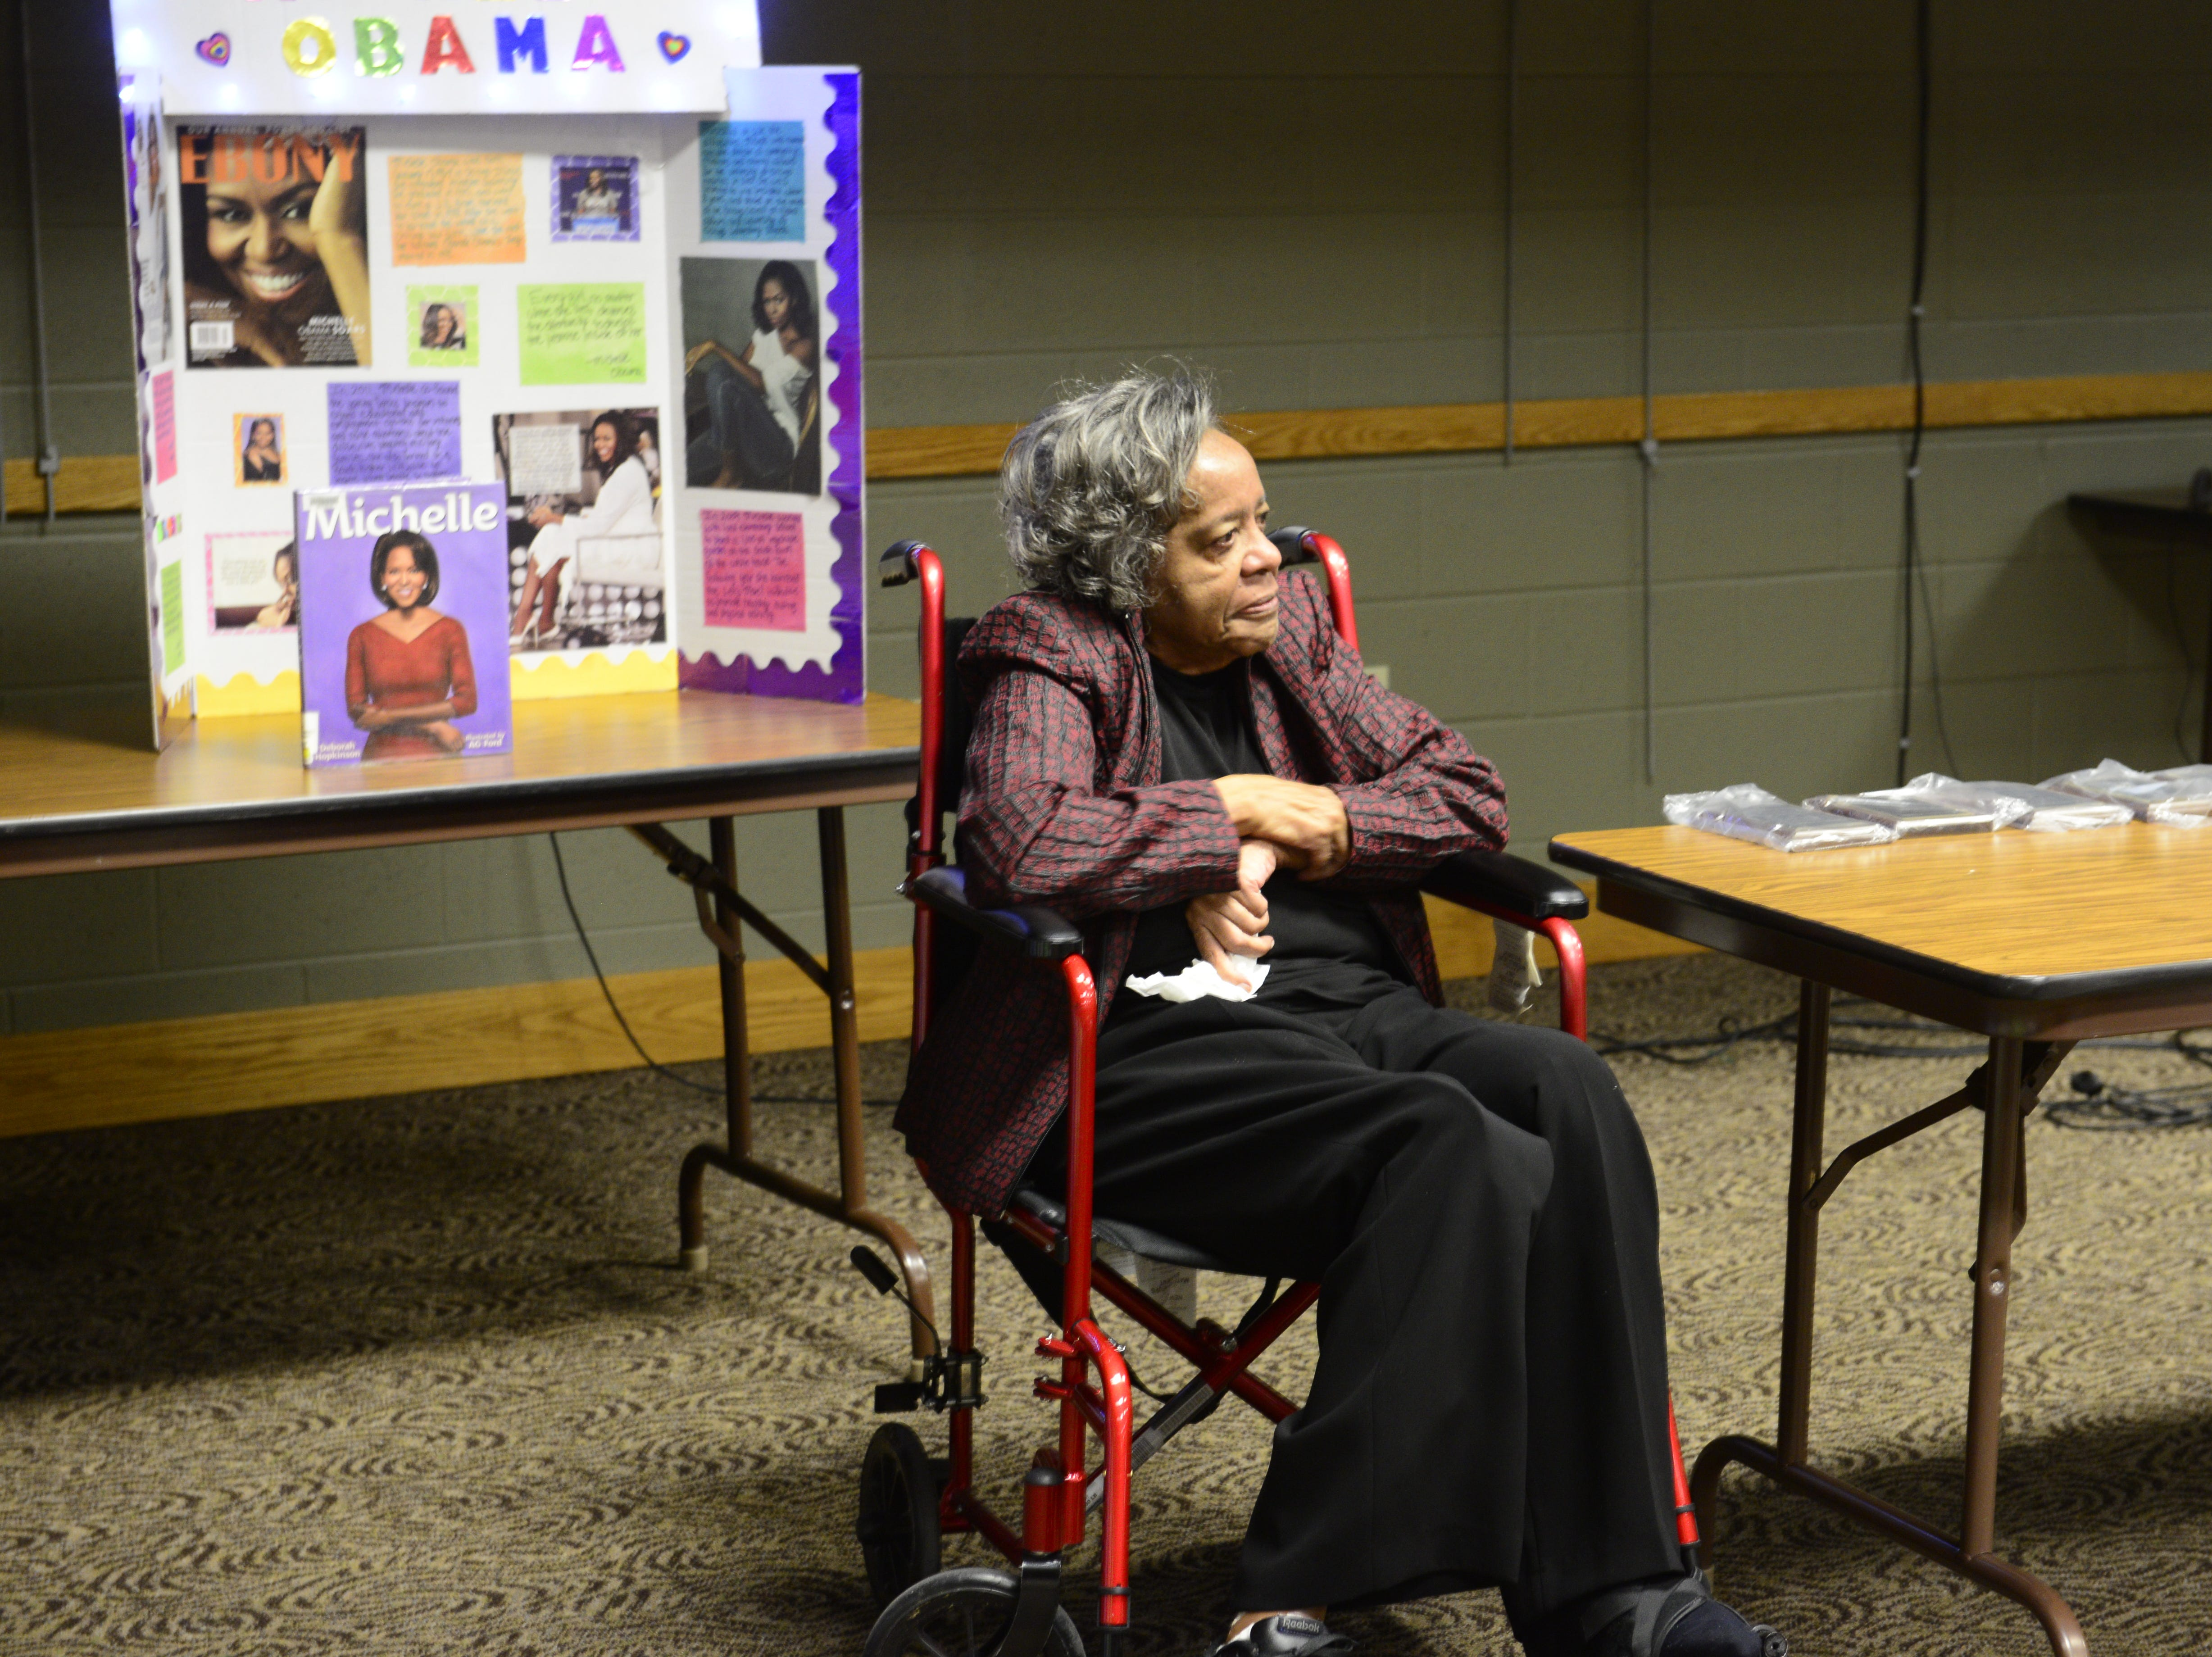 Vivian Mercer was honored as a pioneer of civil rights in Jackson at the Jackson-Madison County Library in Jackson, Tenn. Feb. 27, 2019